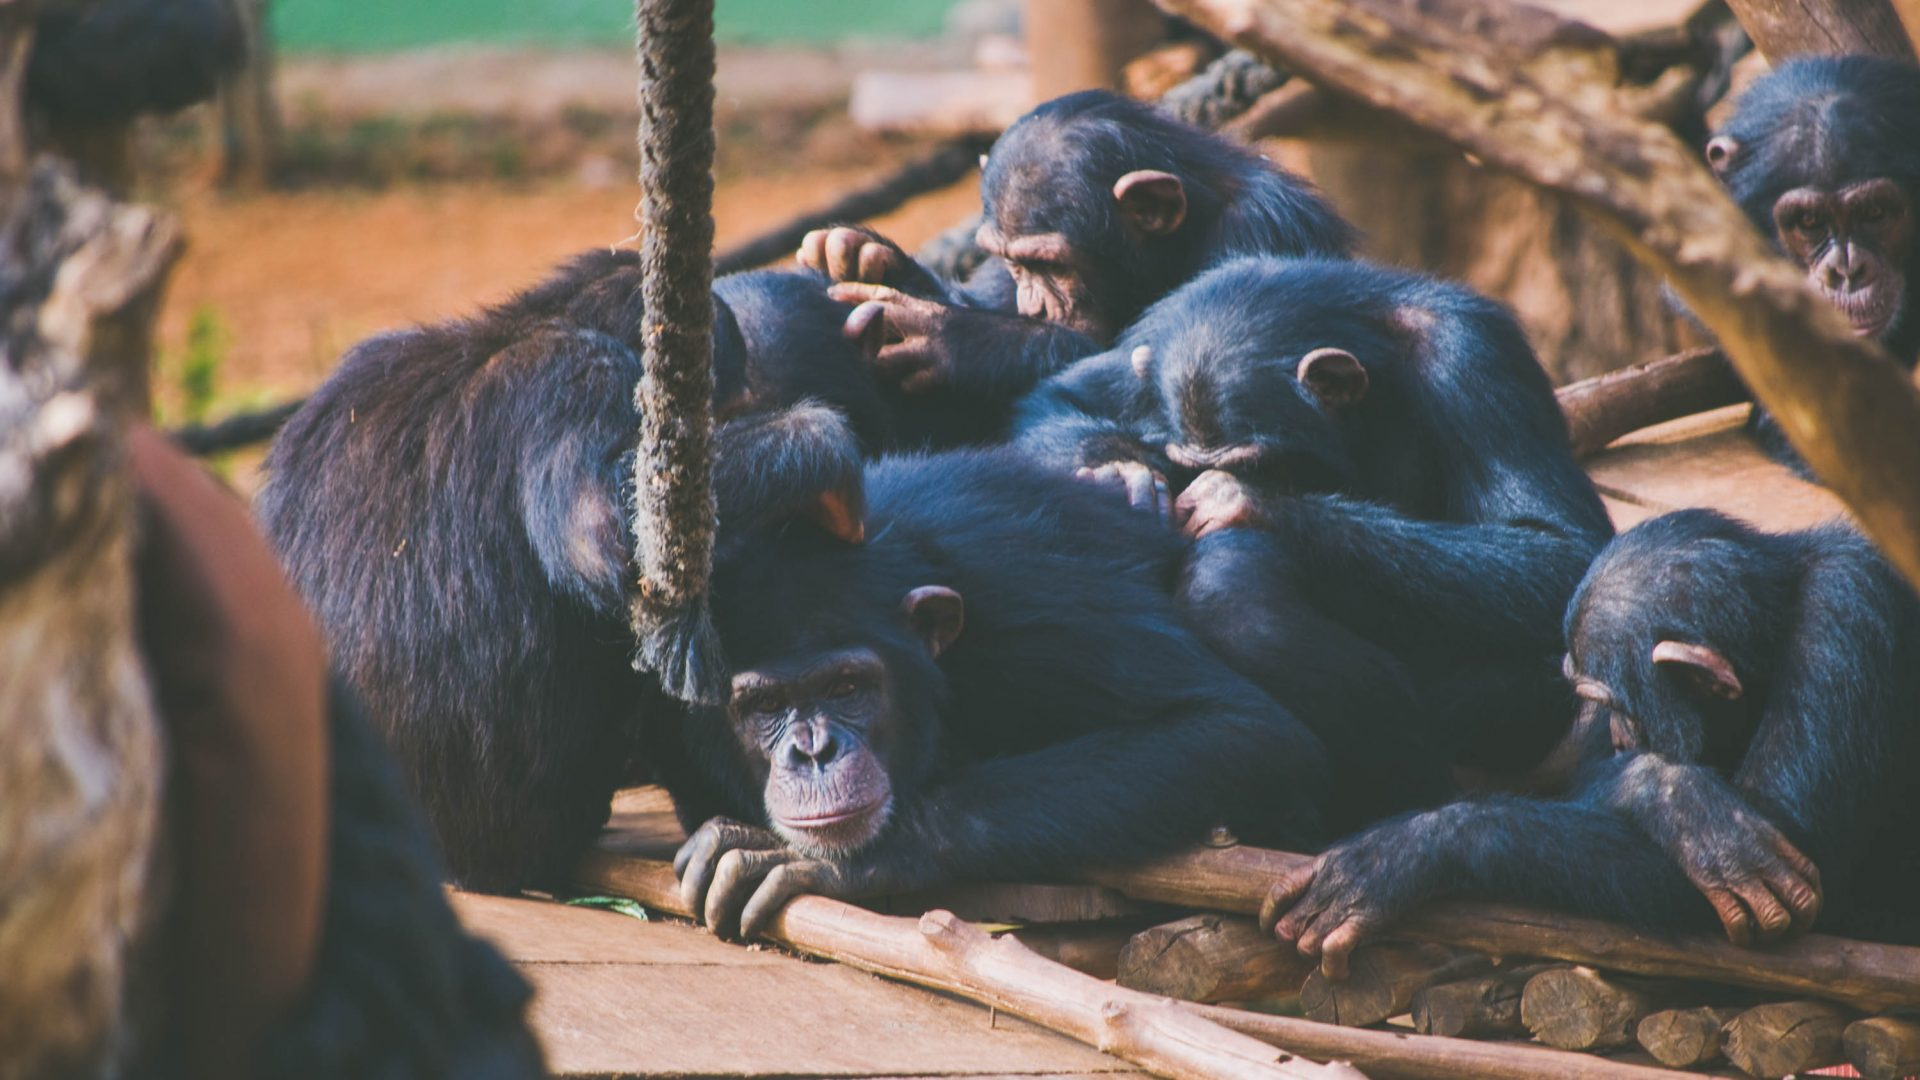 Chimps groom each other at the Tacugama Chimpanzee Sanctuary in Sierra Leone.